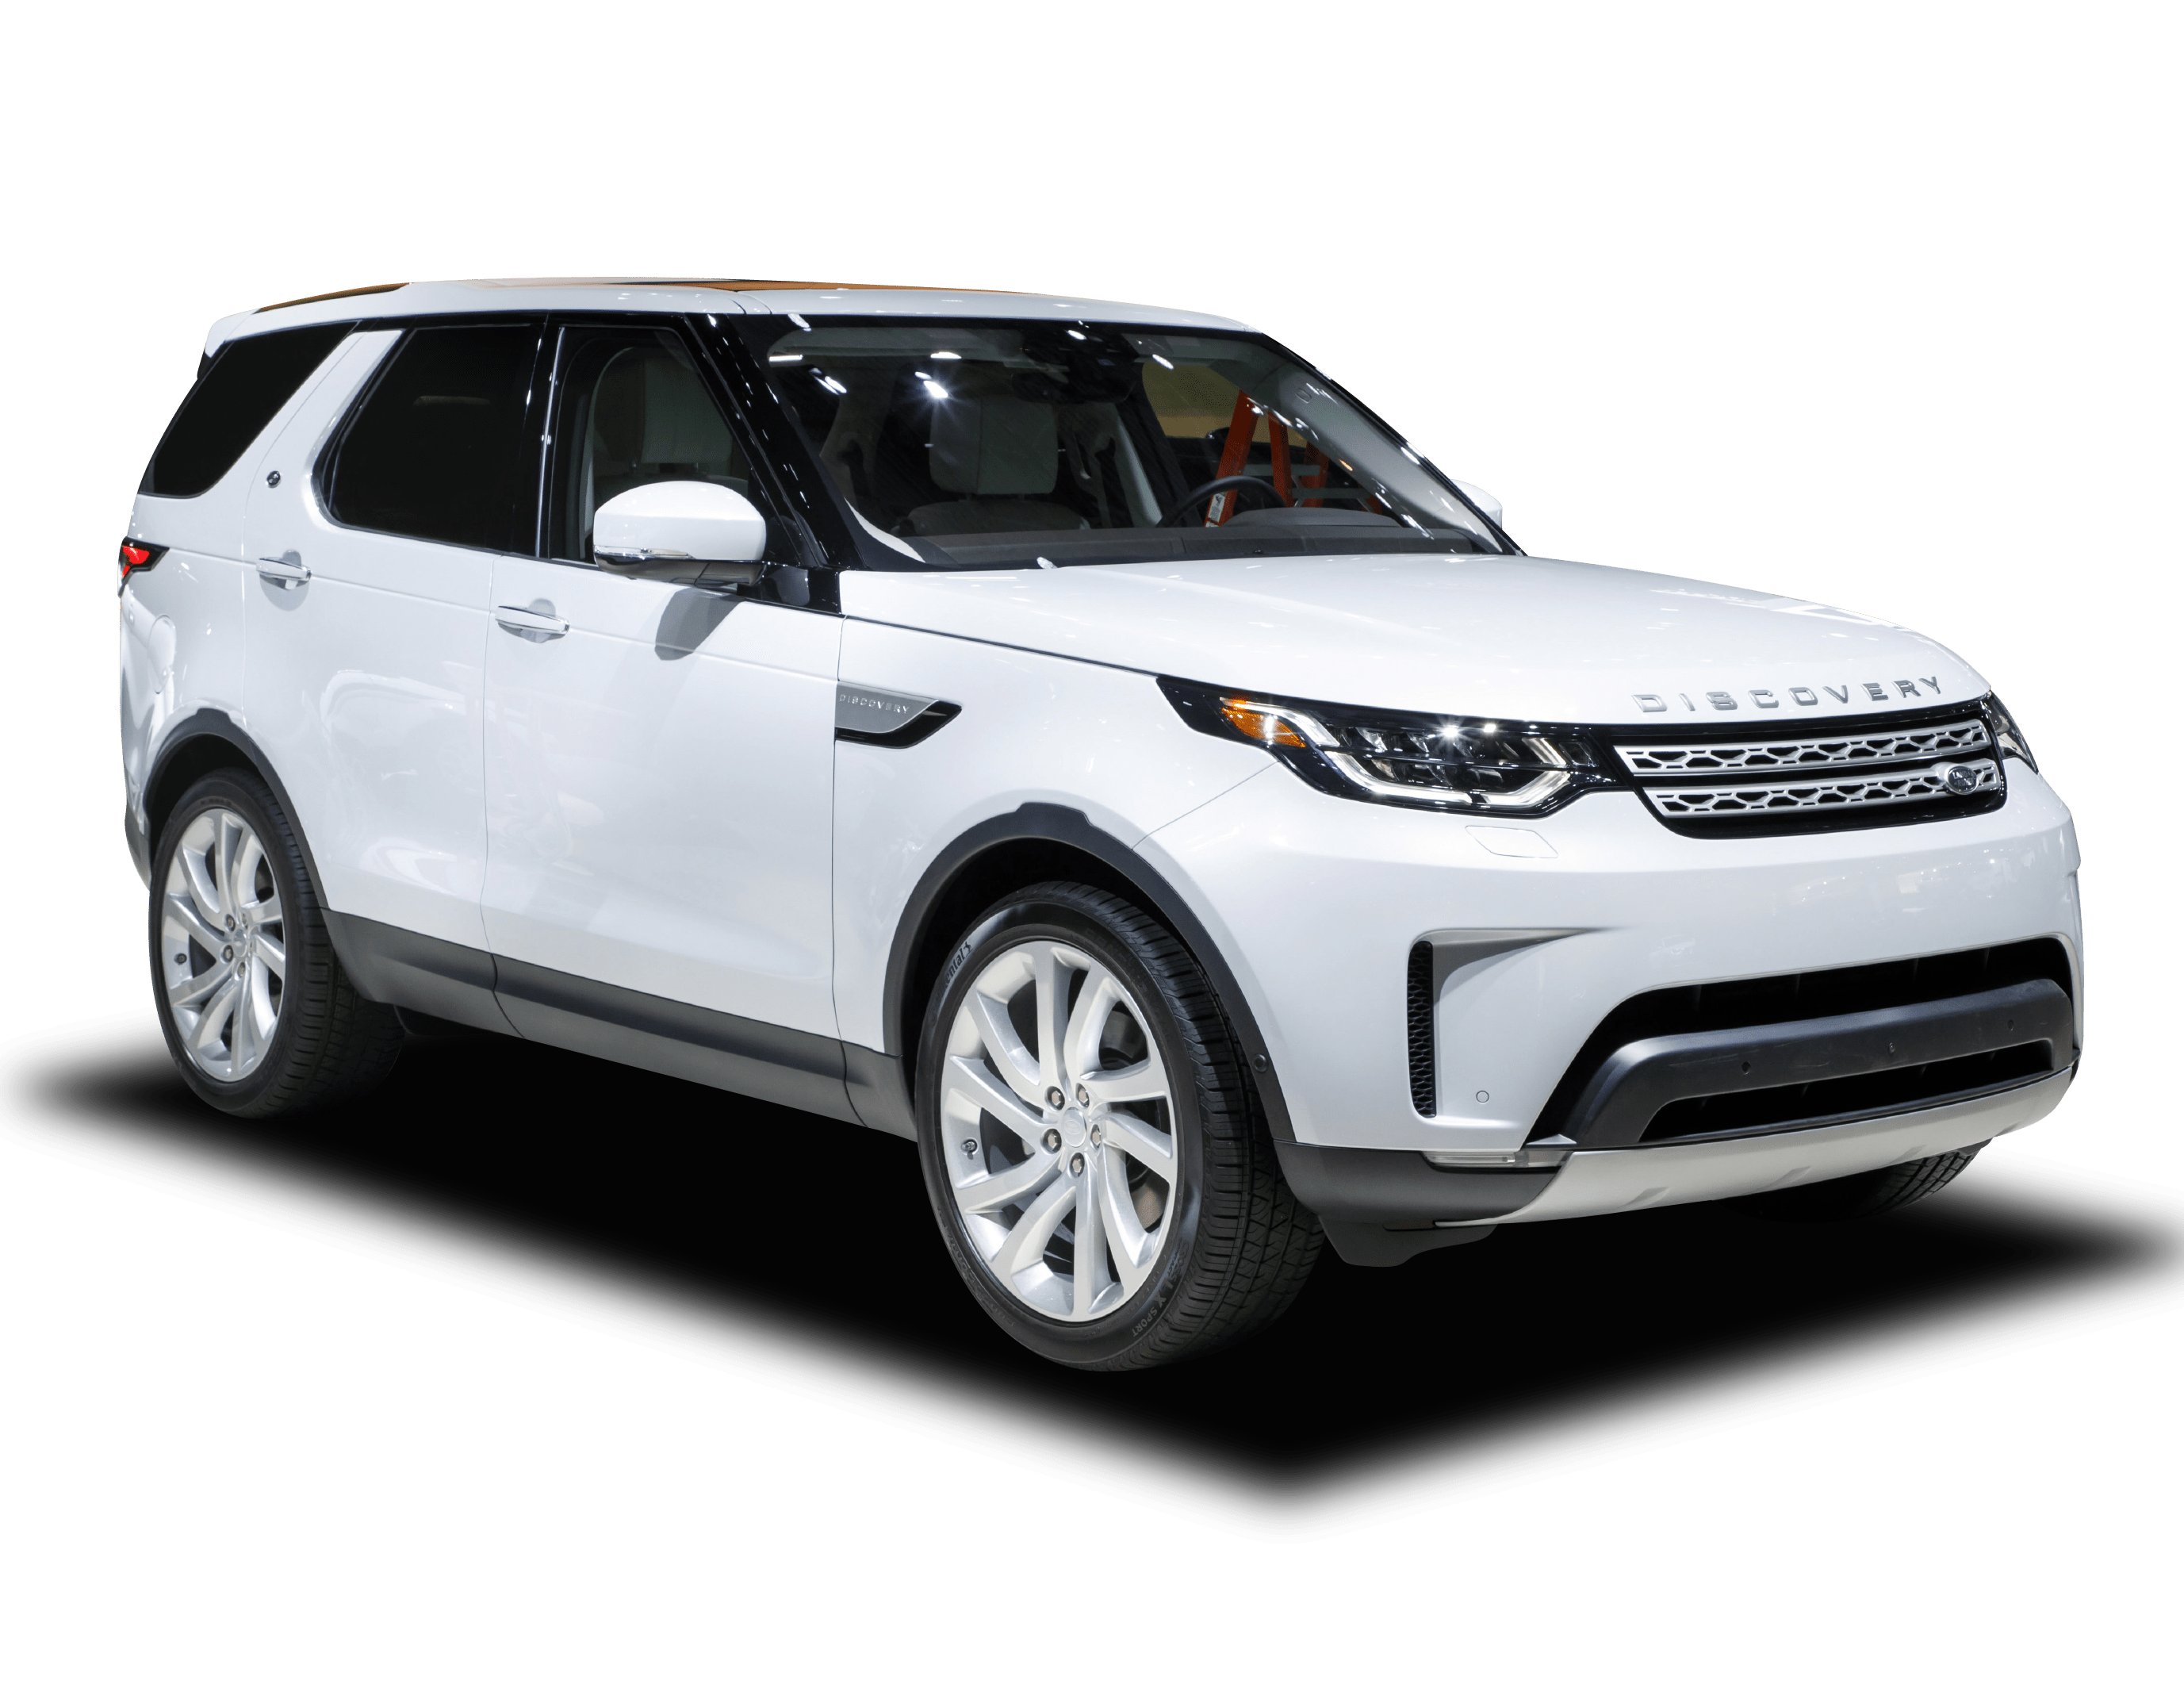 Discovery Land Rover >> Land Rover Discovery Review For Sale Price Colours